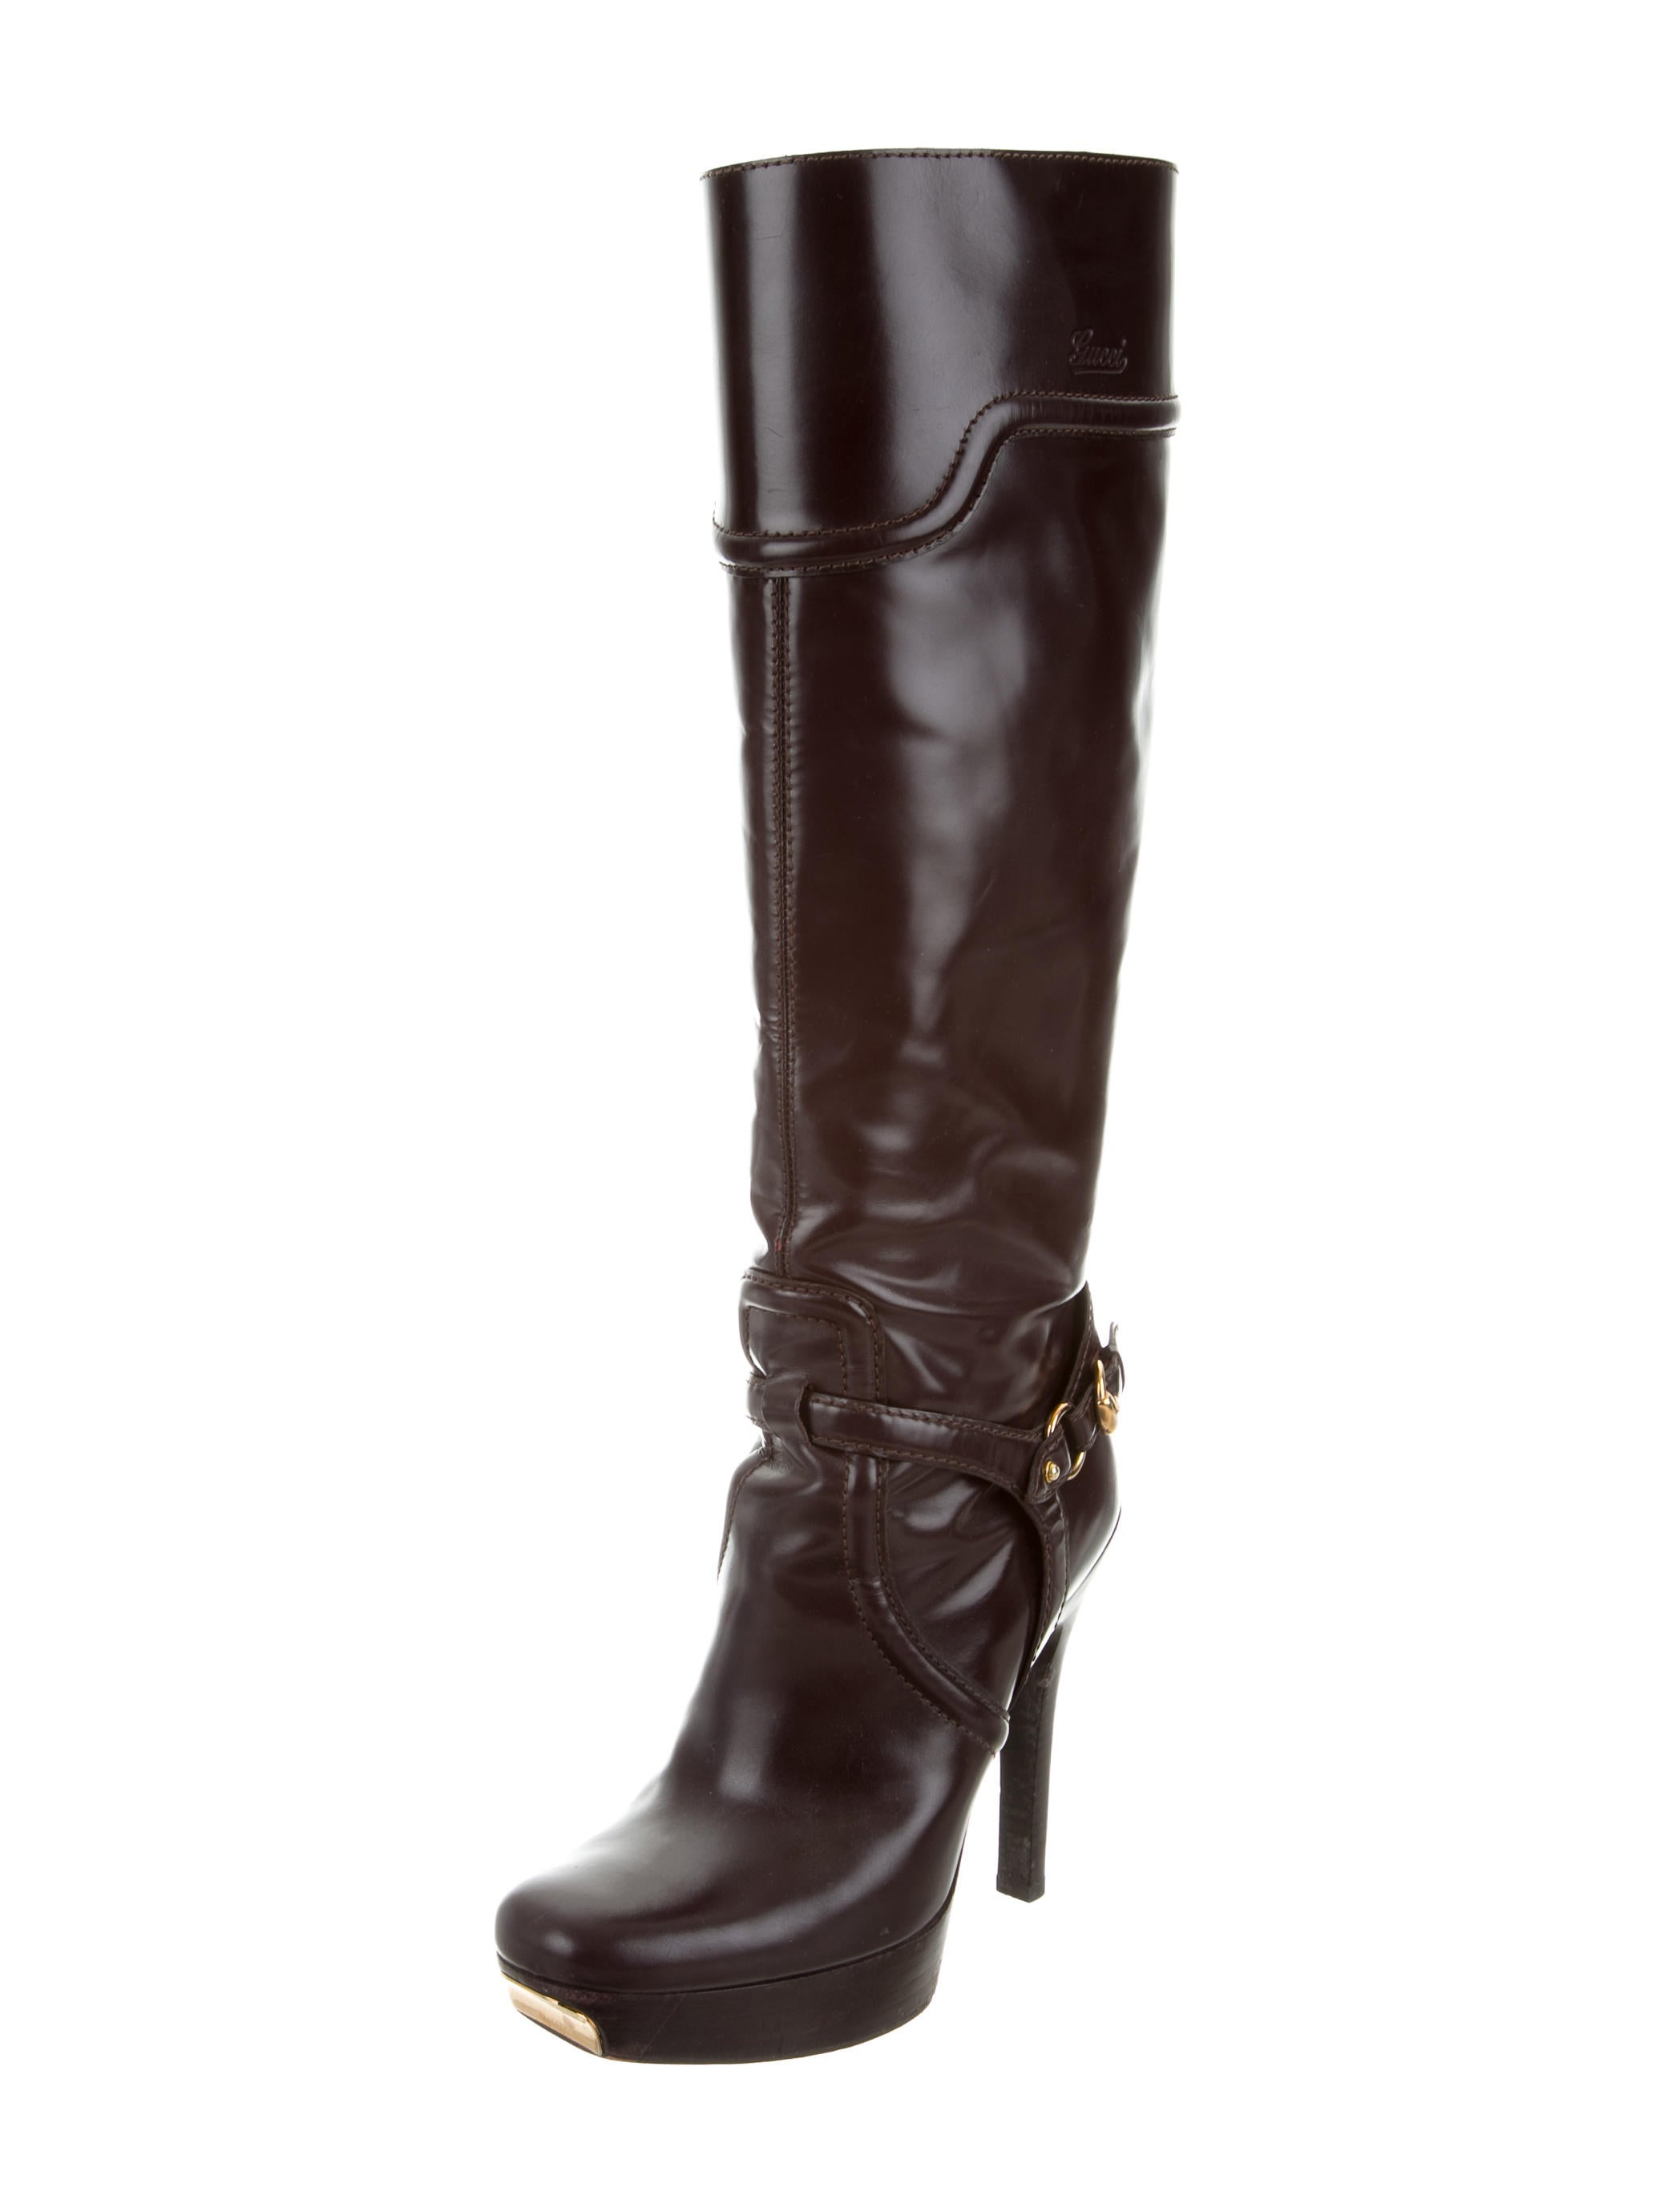 Gucci Knee High Platform Boots Shoes Guc137625 The